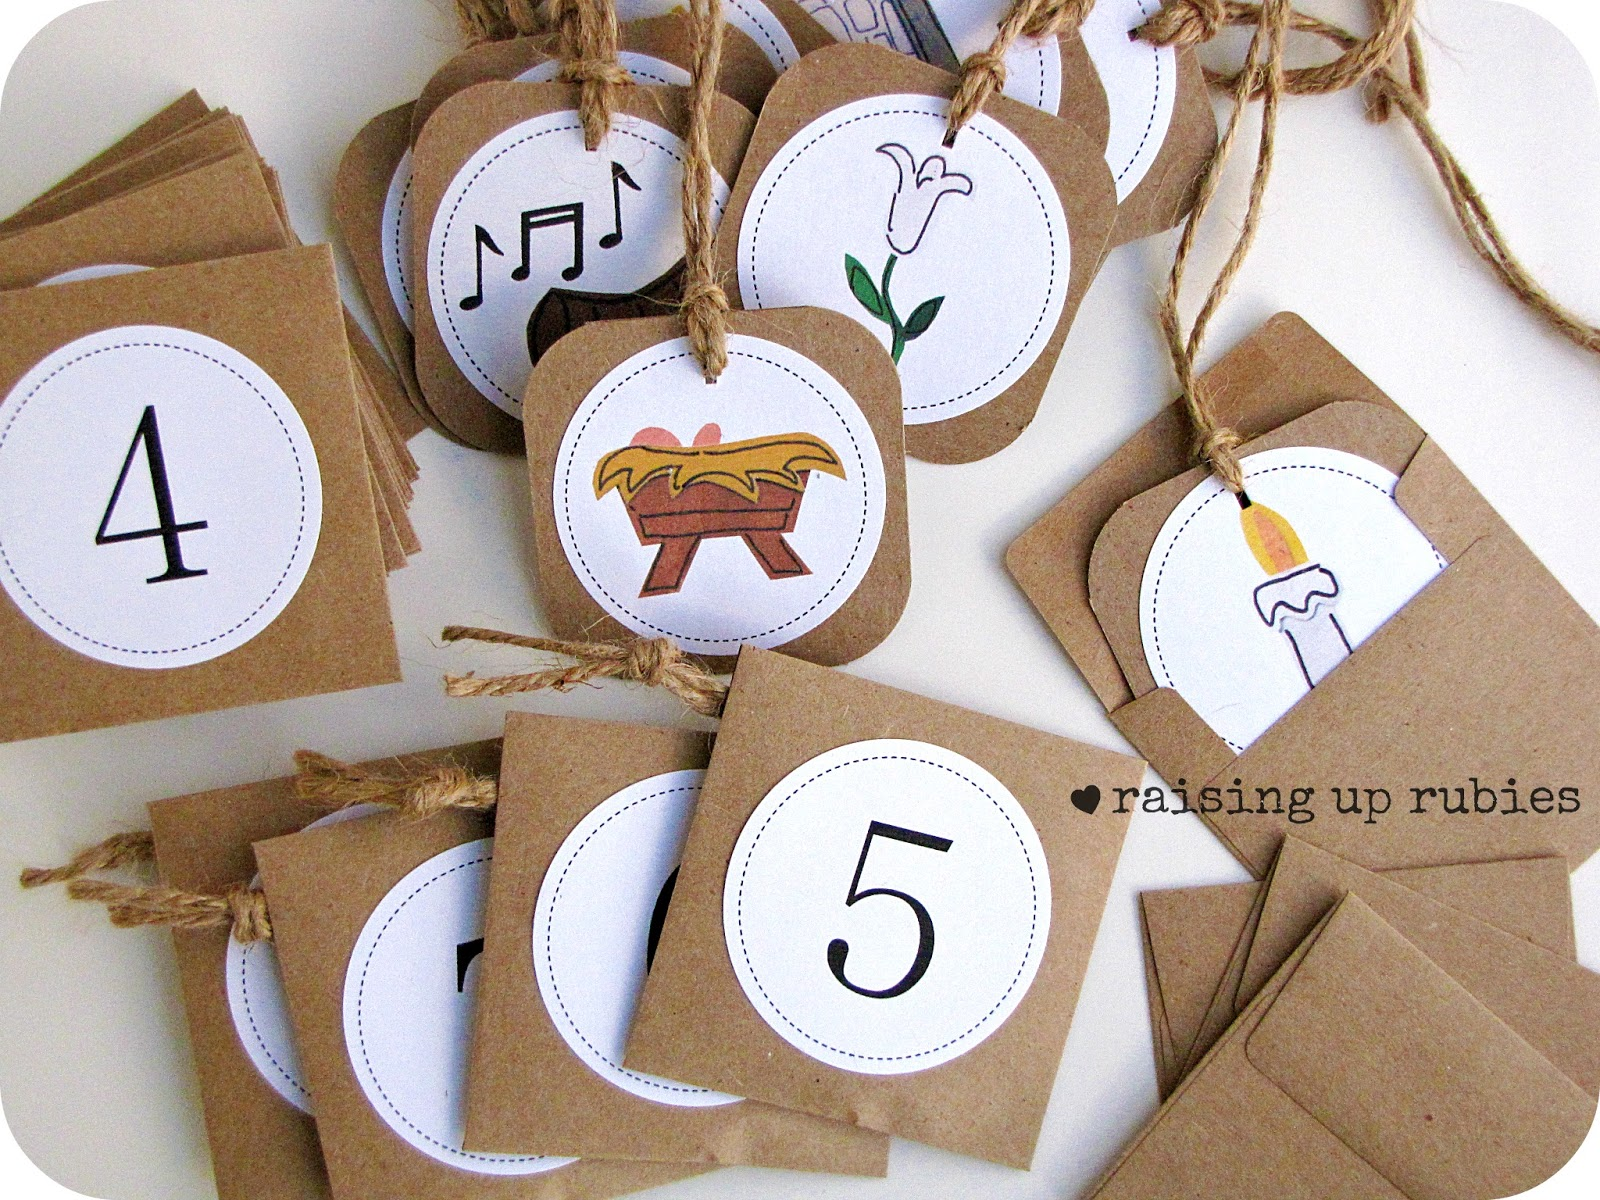 graphic about Printable Jesse Tree Ornaments named Rising Up Rubies- Weblog: Celebrating Xmas with a Jesse